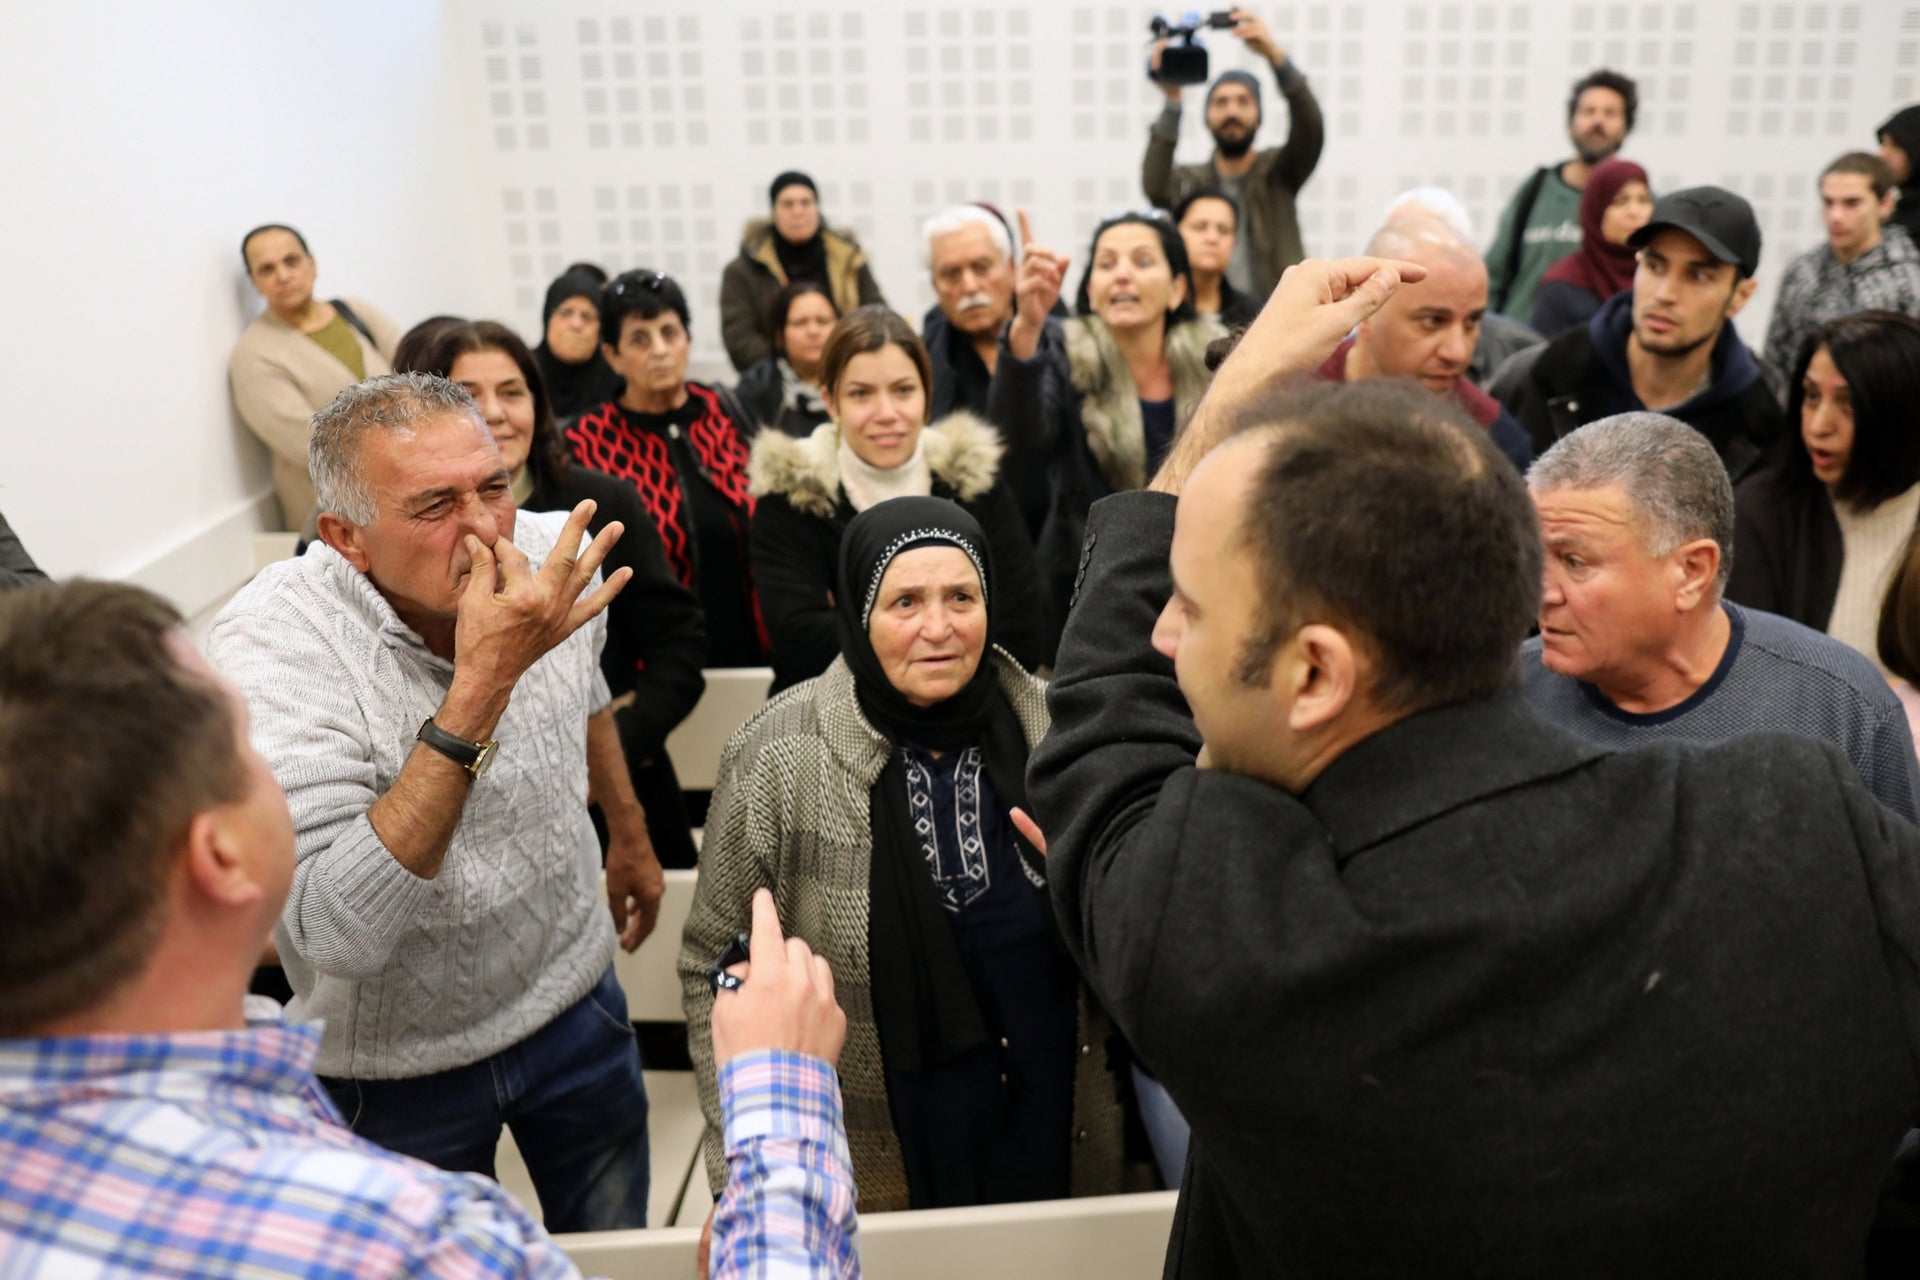 Members of Bakri's family confront IDF reservists in court.